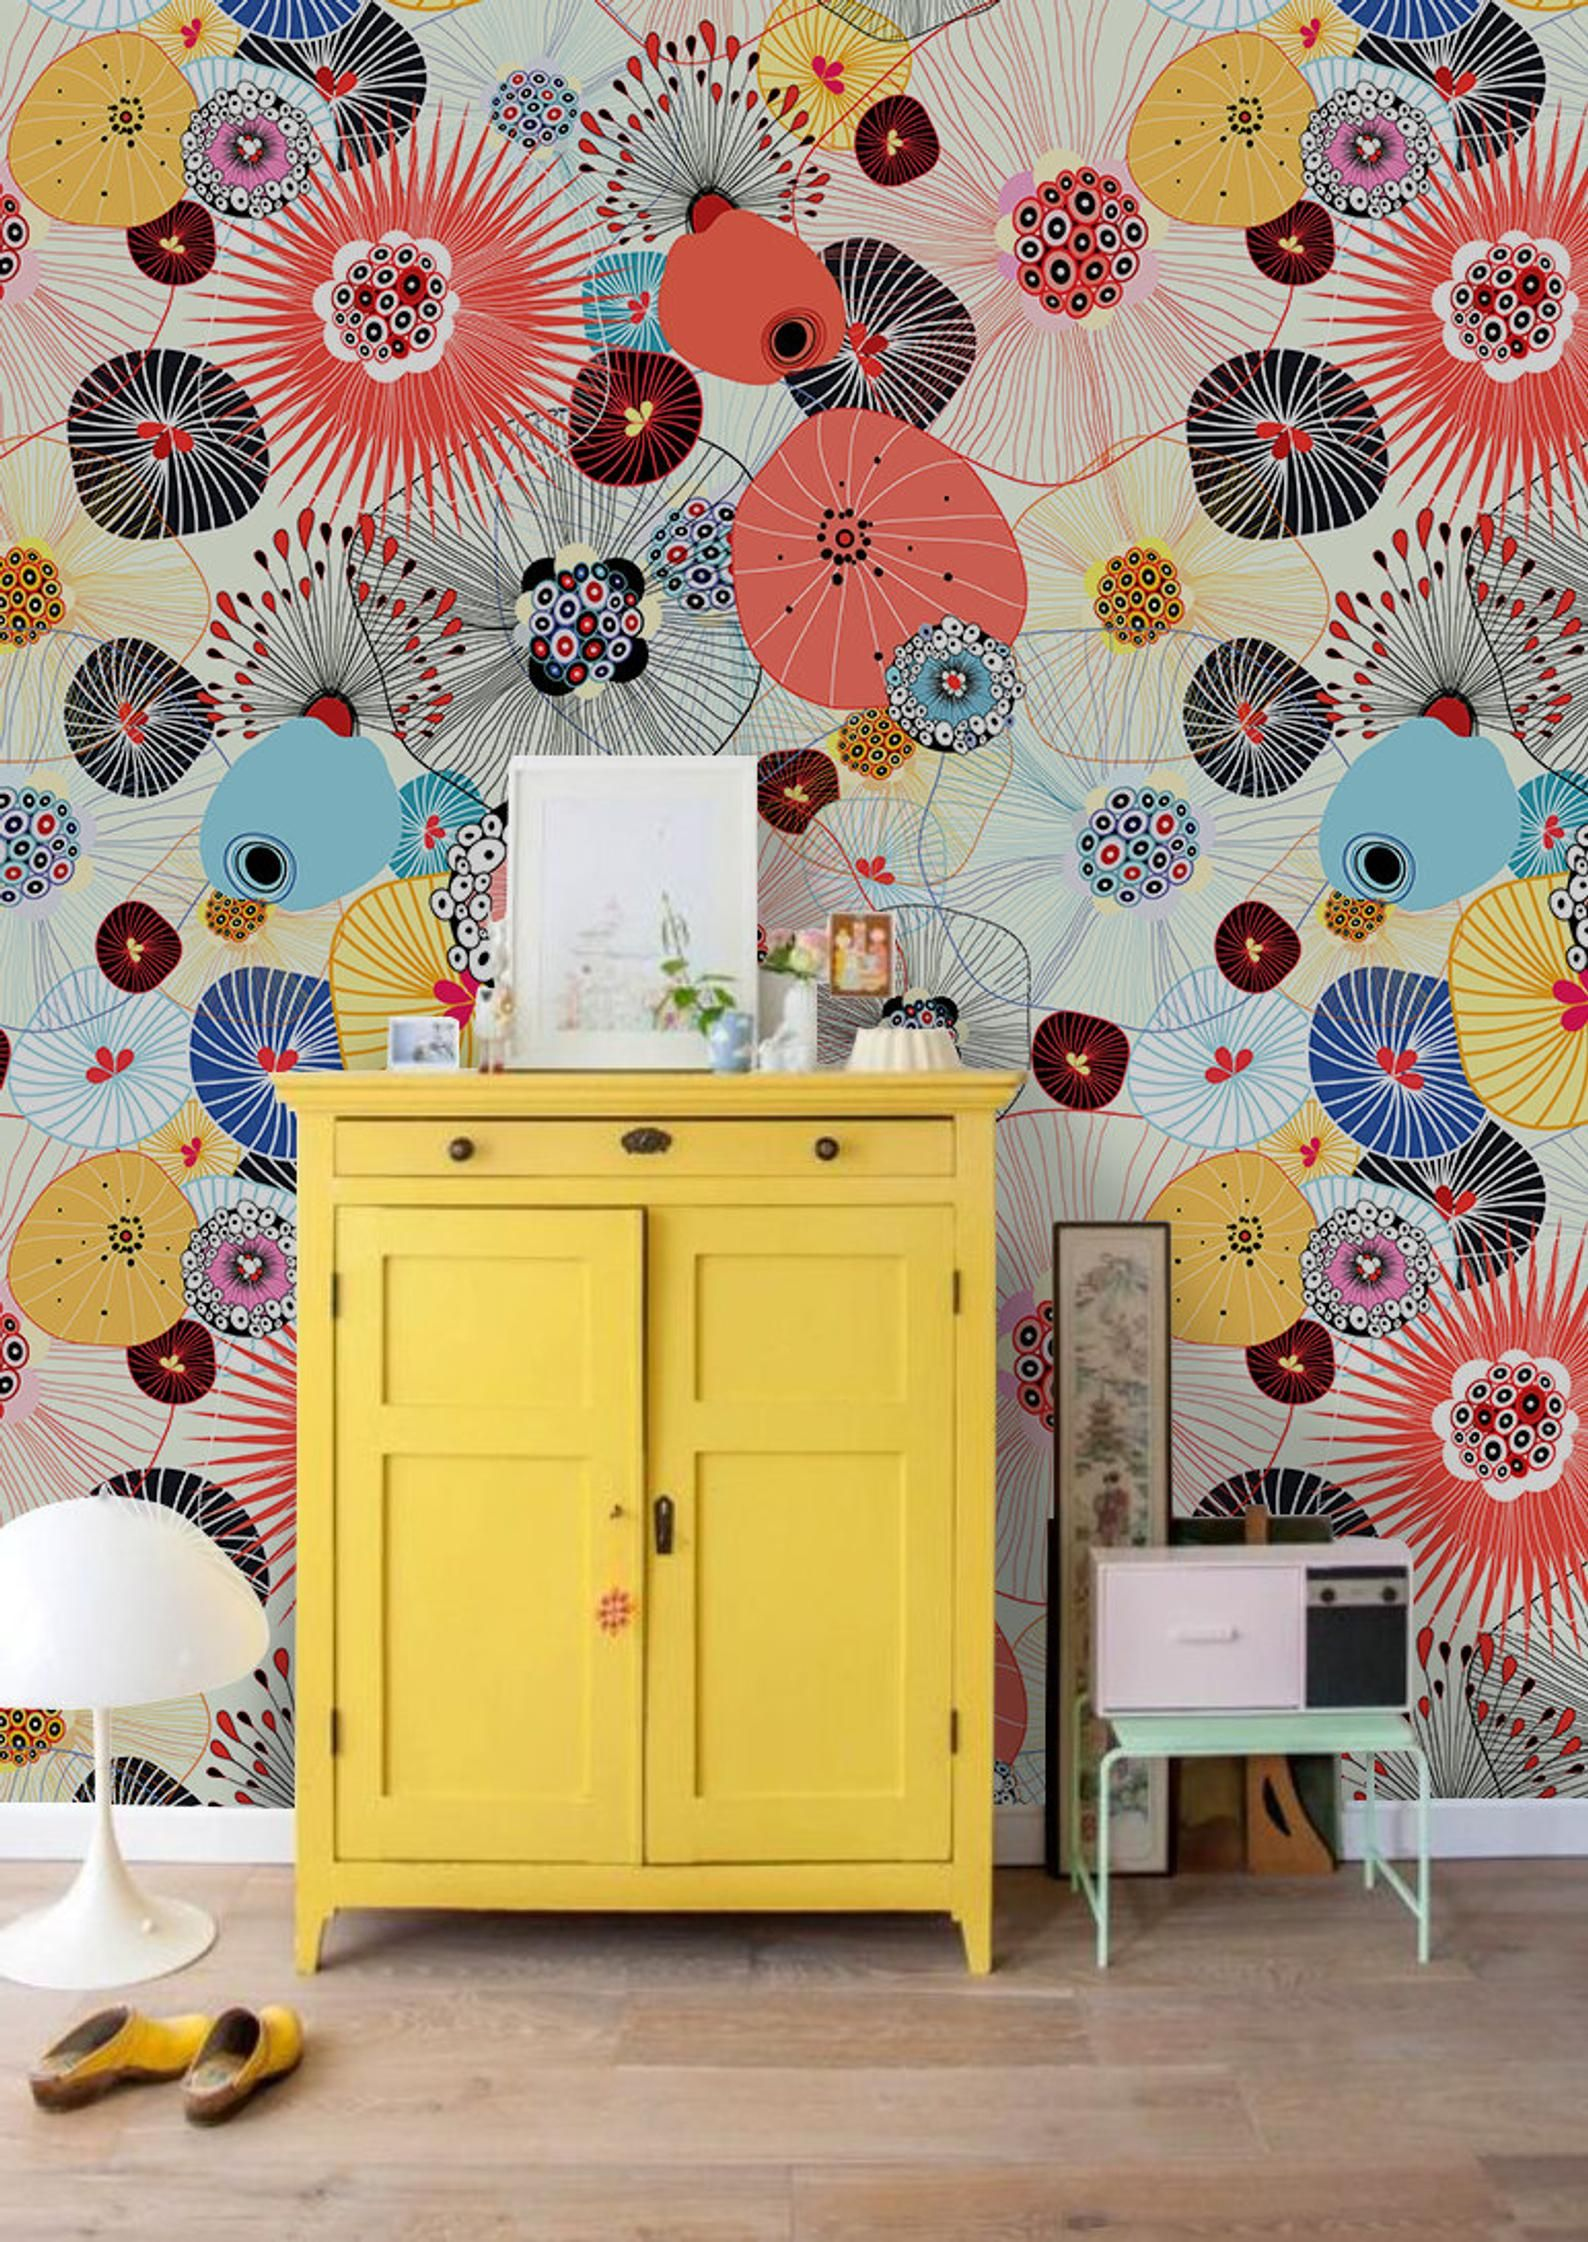 Abstract Texture Removable Wallpaper Red Yellow And Blue Wall Etsy In 2020 Removable Wallpaper Blue Walls Wall Murals